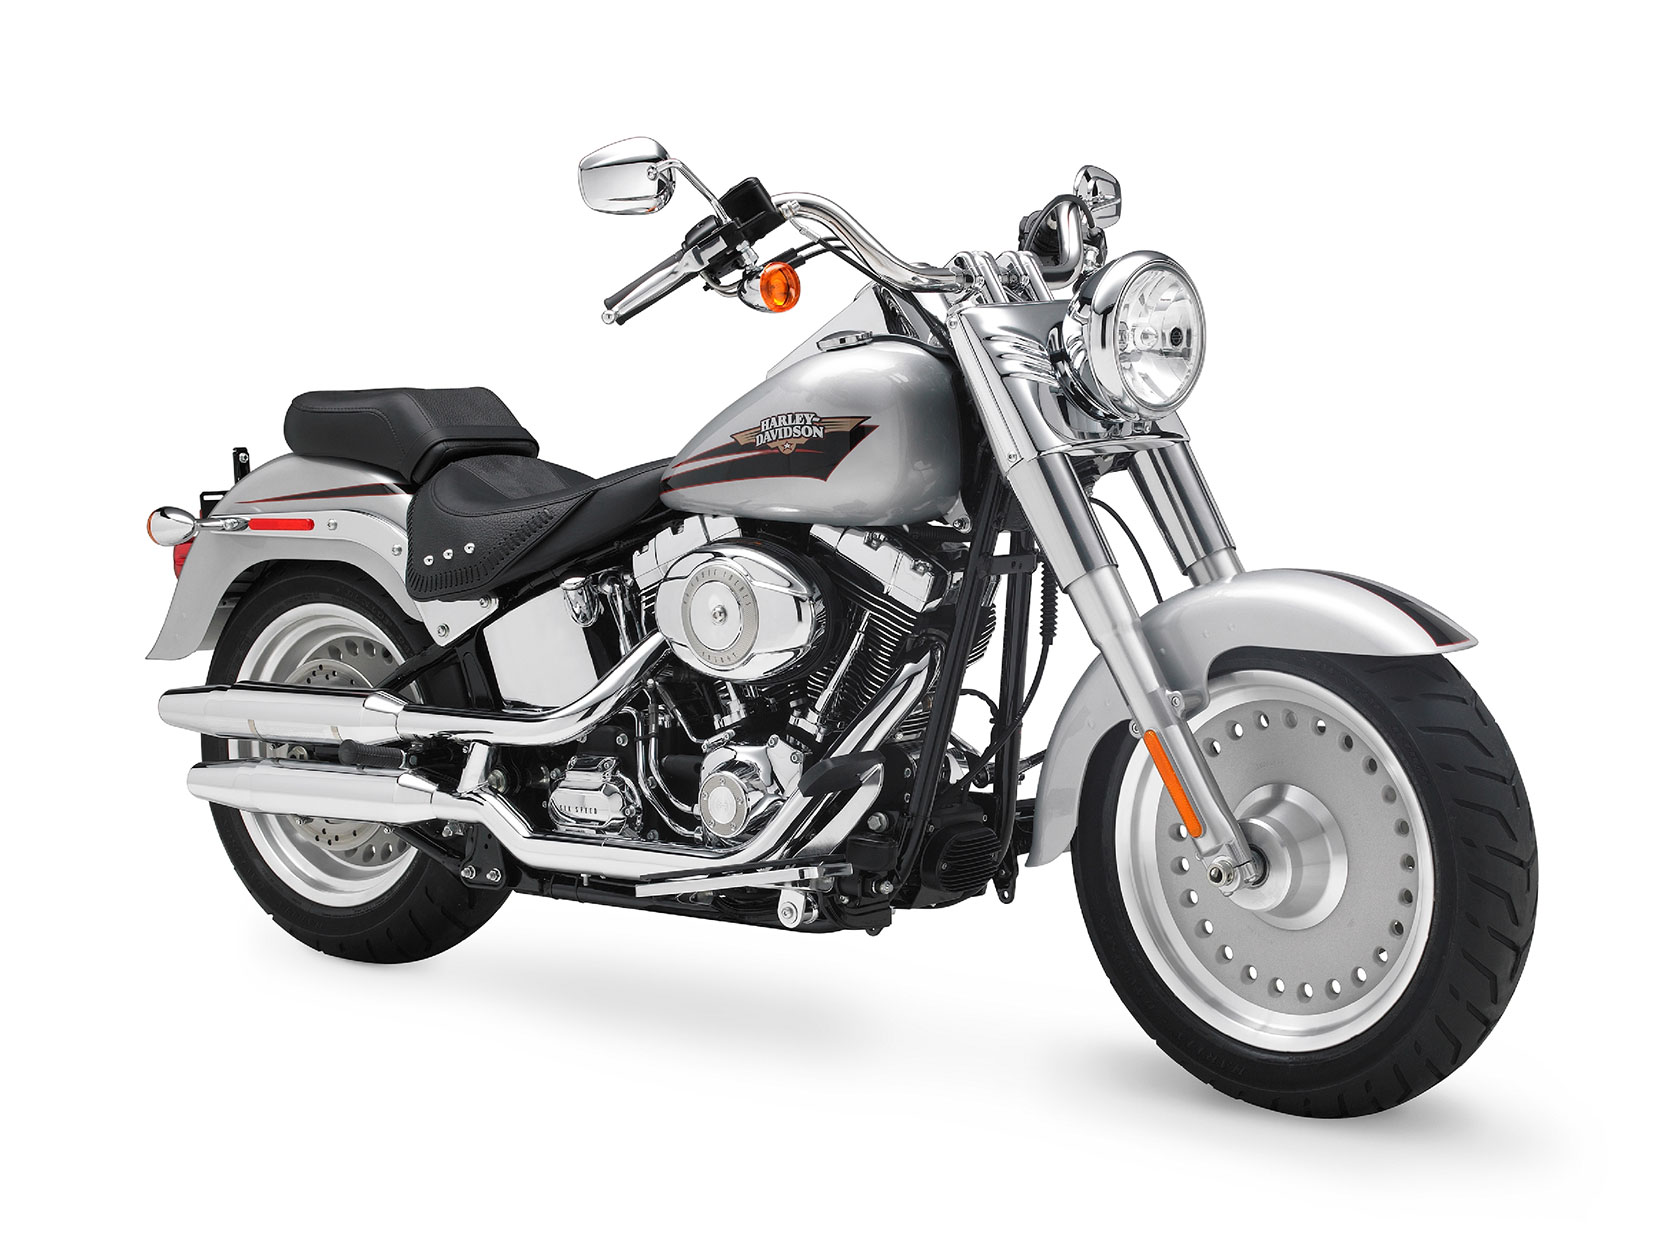 harley davidson fat boy specs 2009 2010 autoevolution. Black Bedroom Furniture Sets. Home Design Ideas